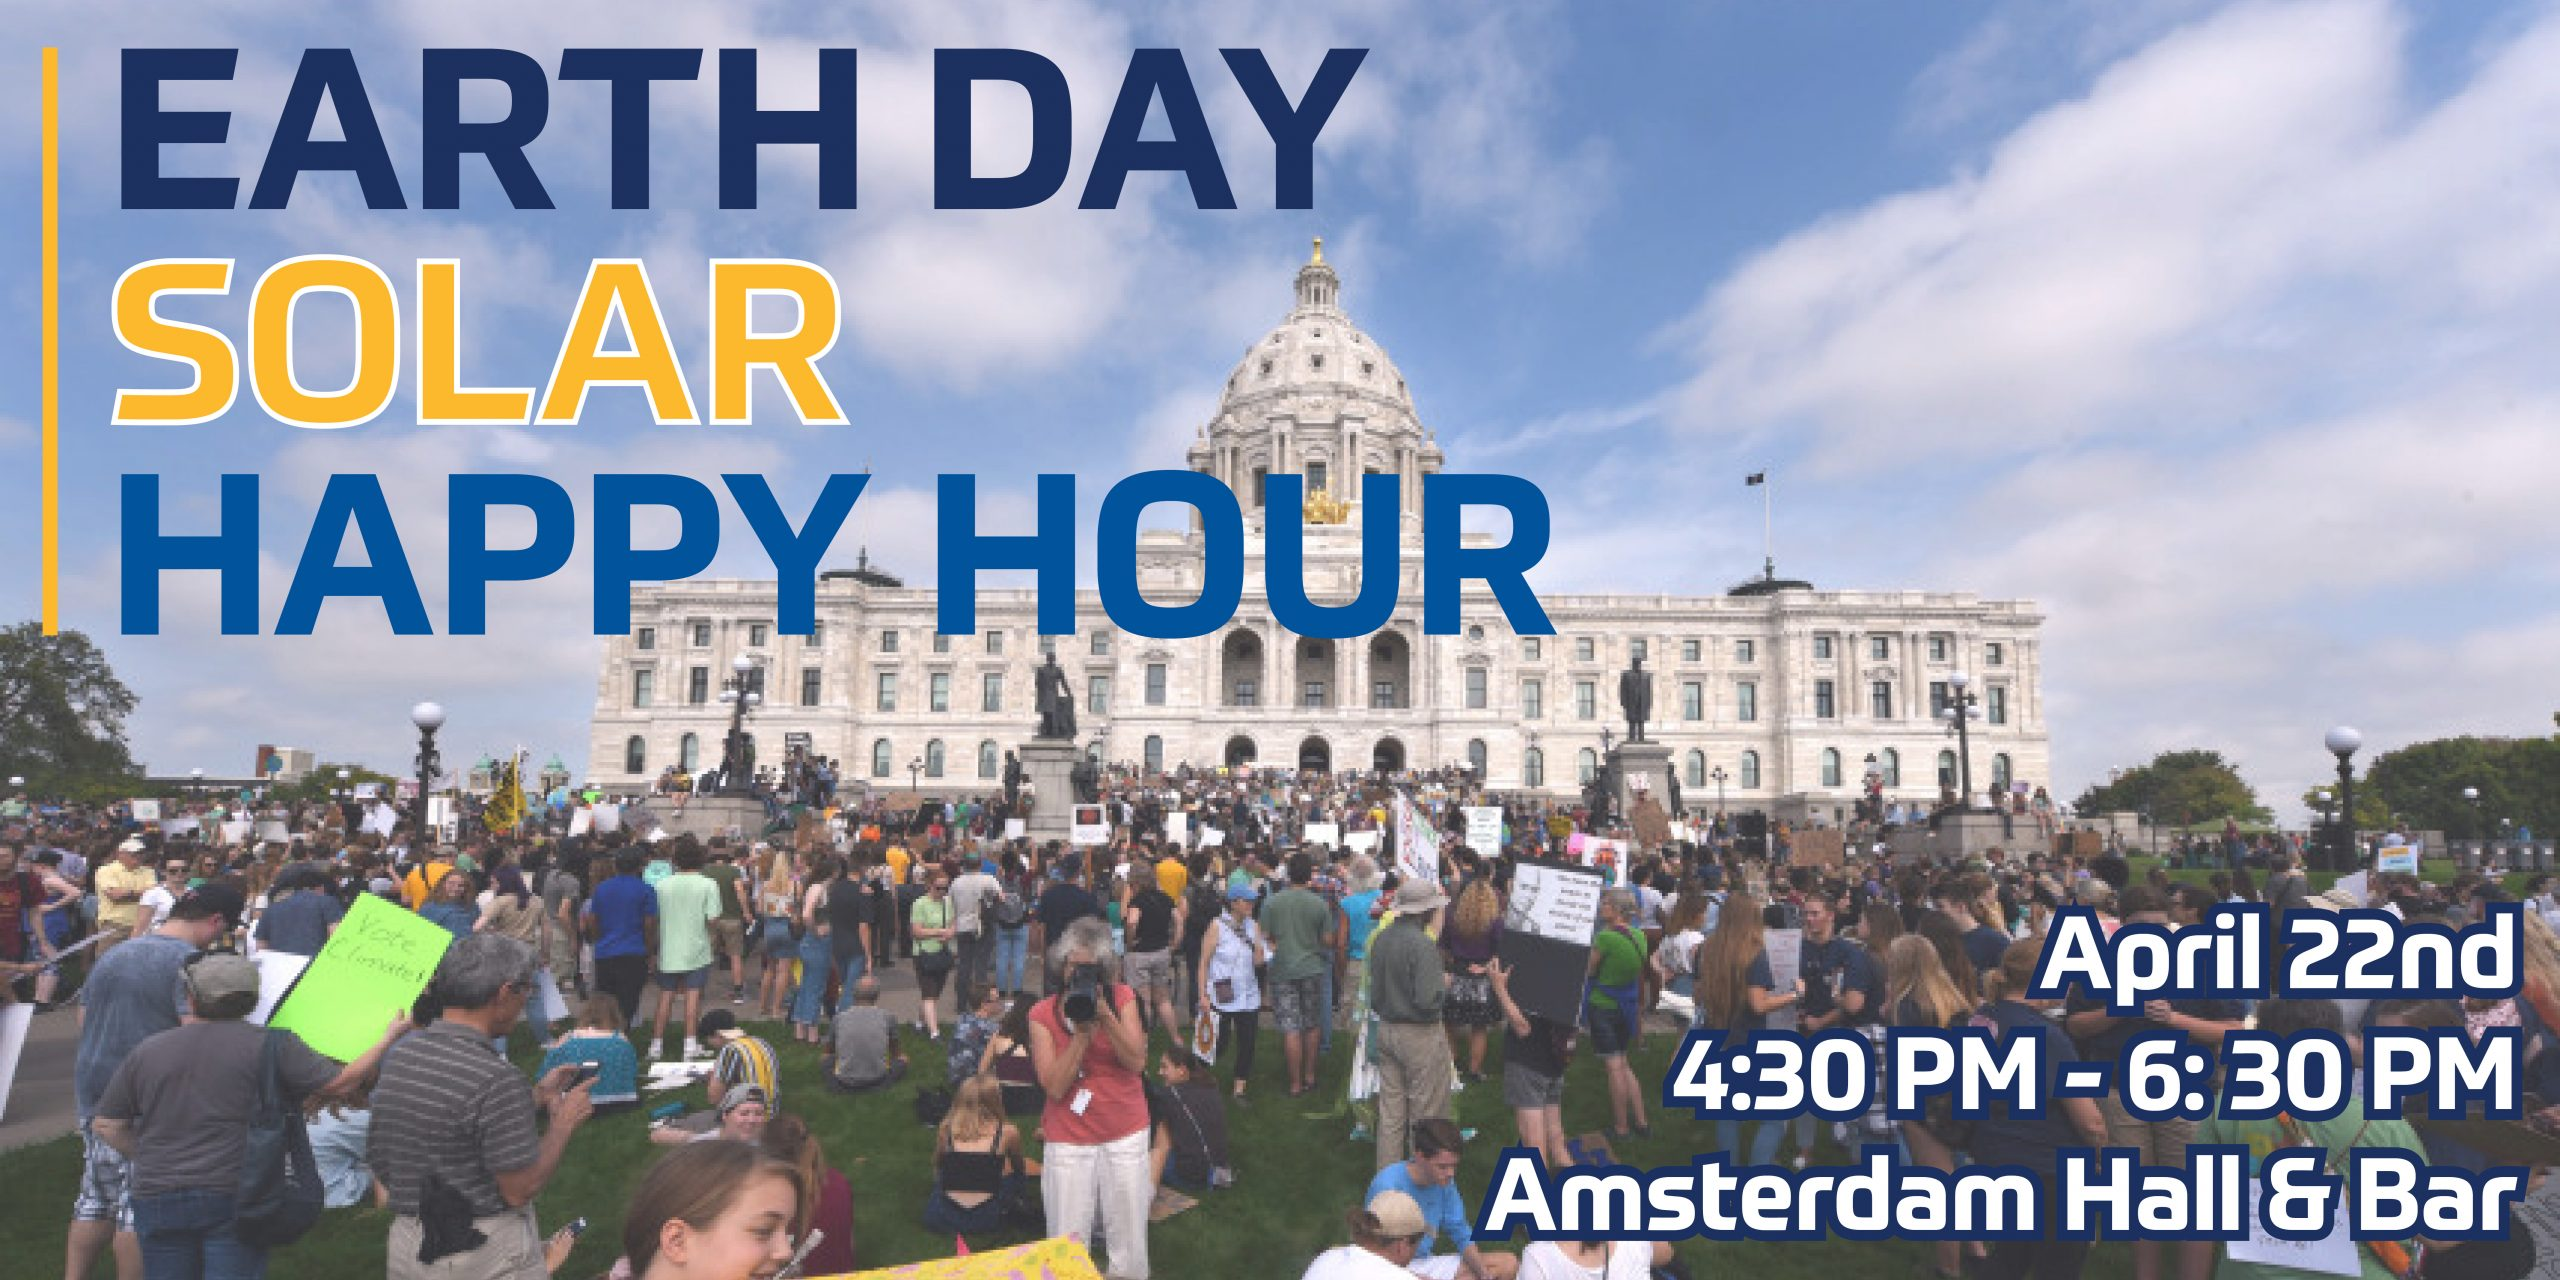 Earth Day Solar Happy Hour